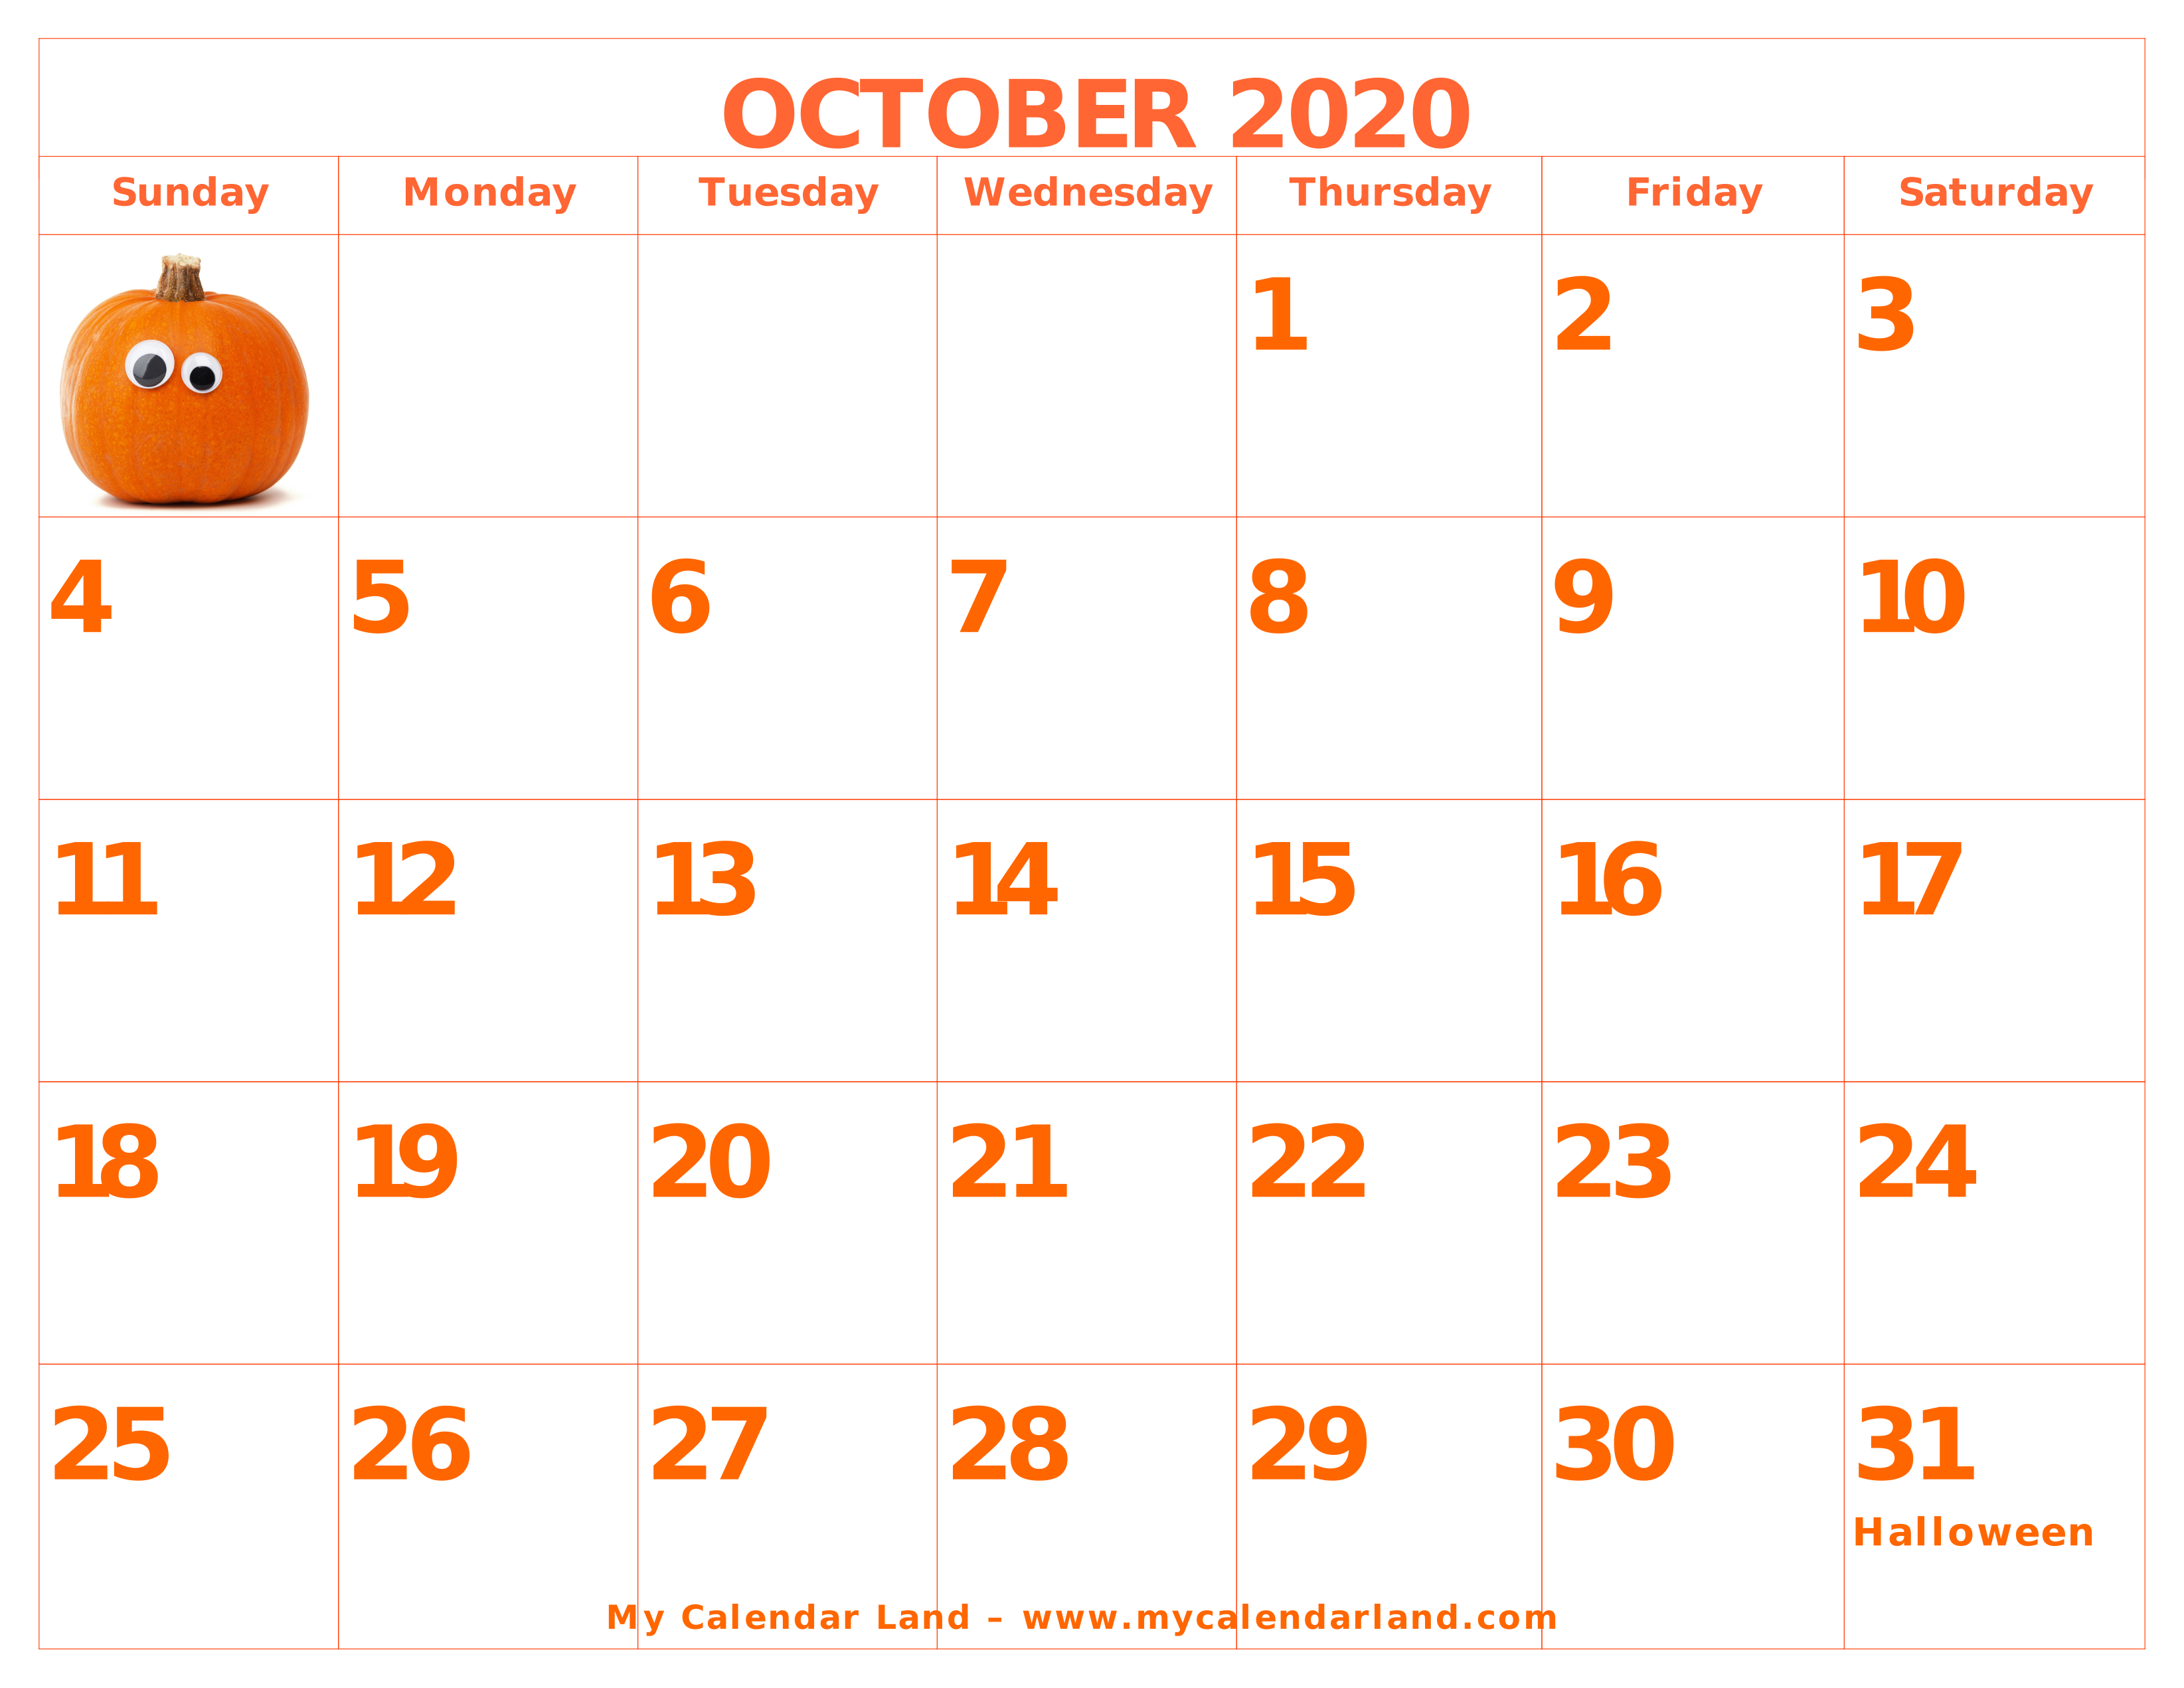 Cool Calendar Printable By Month 2020 October Halloween For School October 2020 Calendar   My Calendar Land